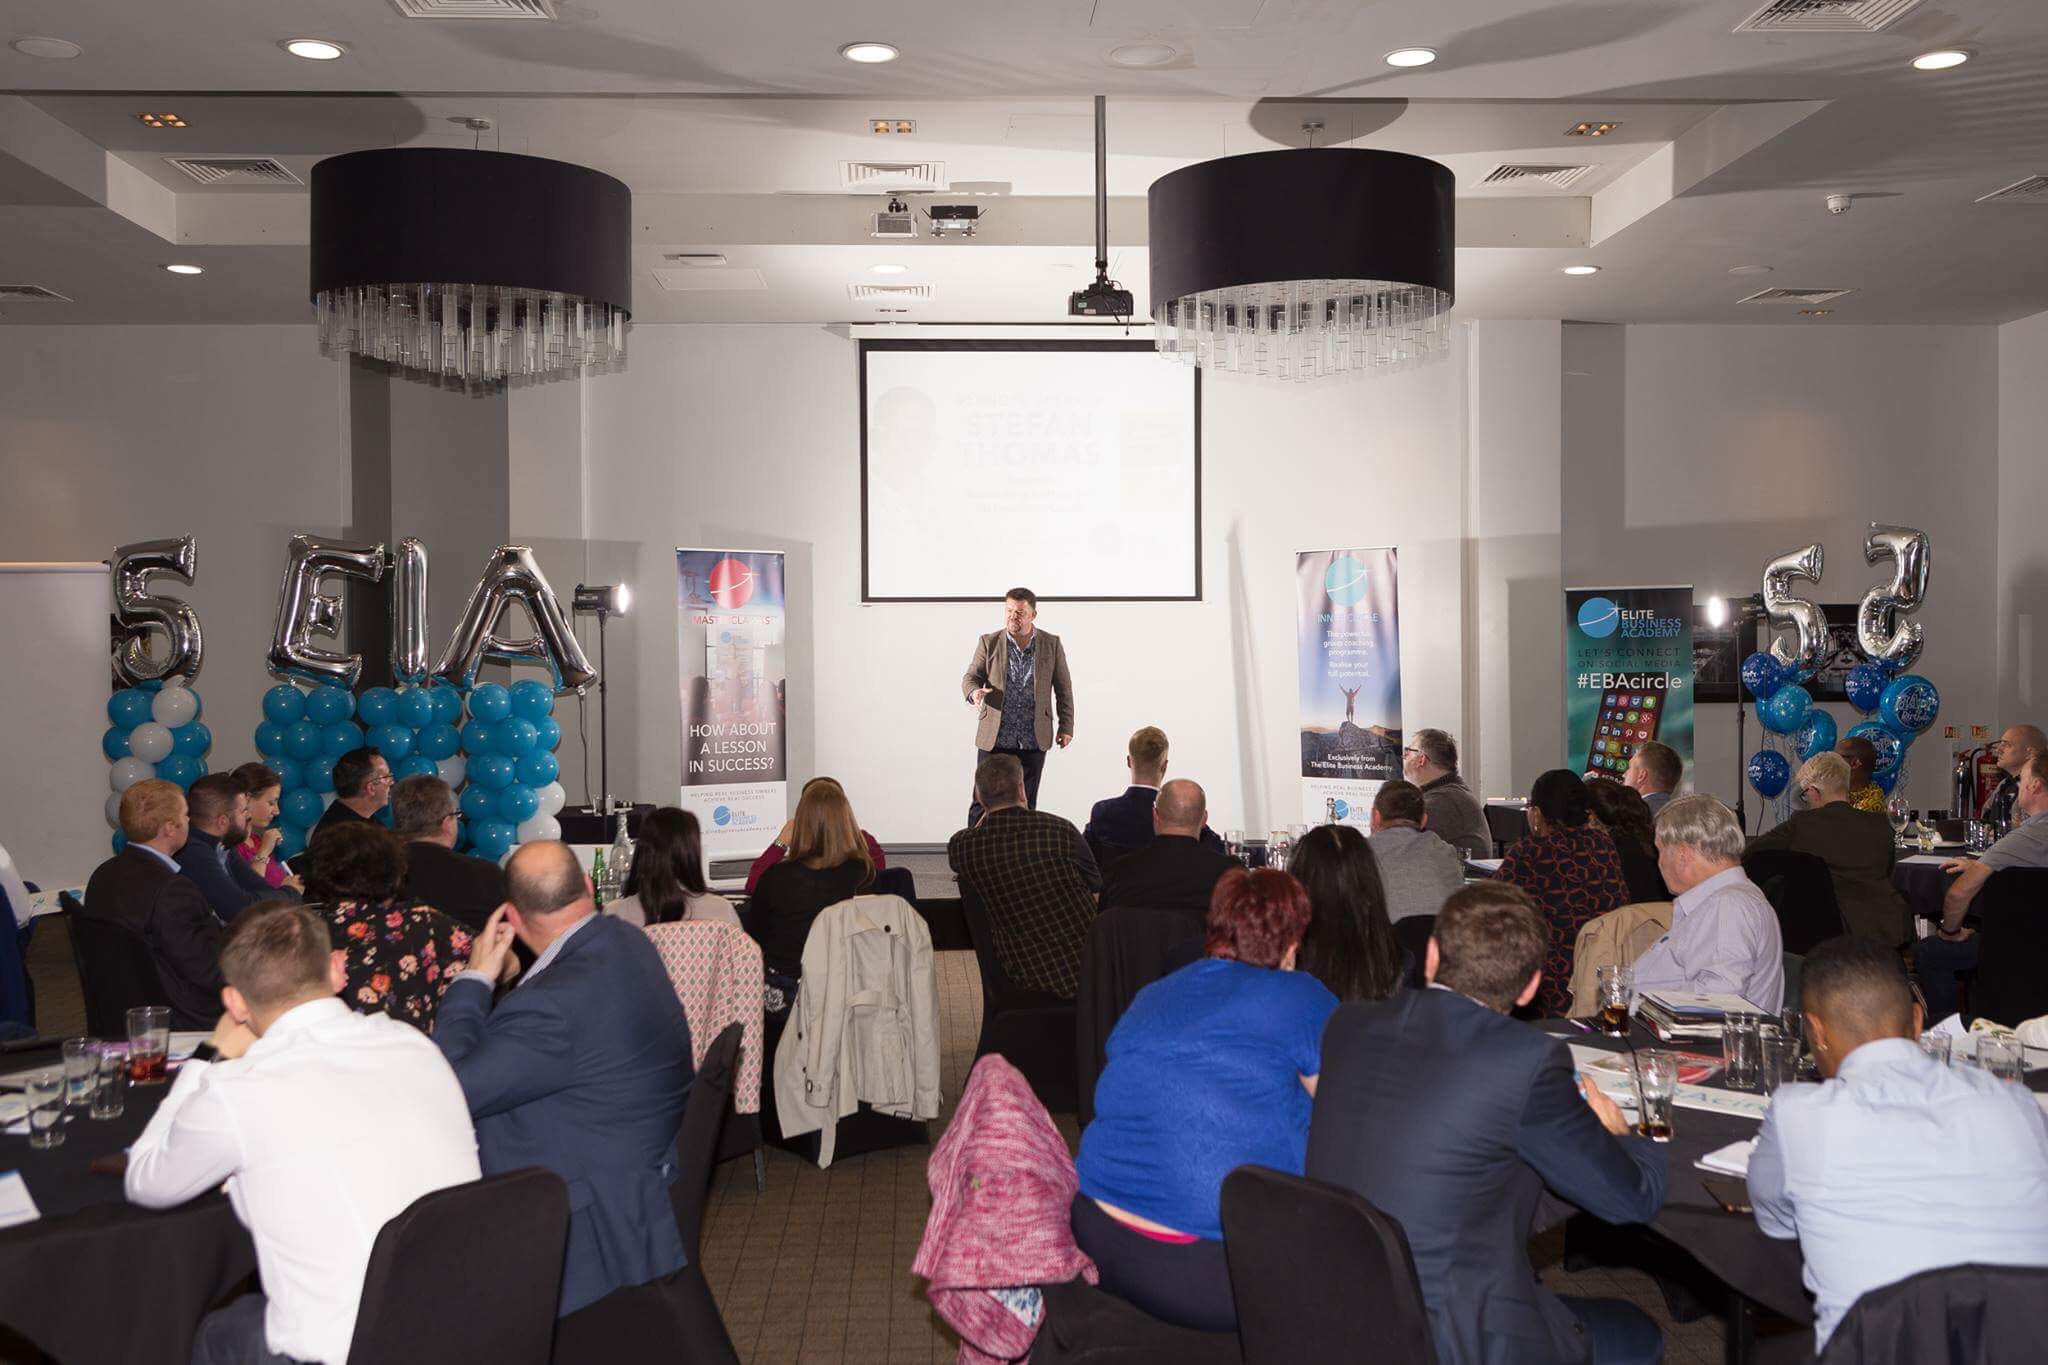 Stefan Thomas speaking at a business networking event